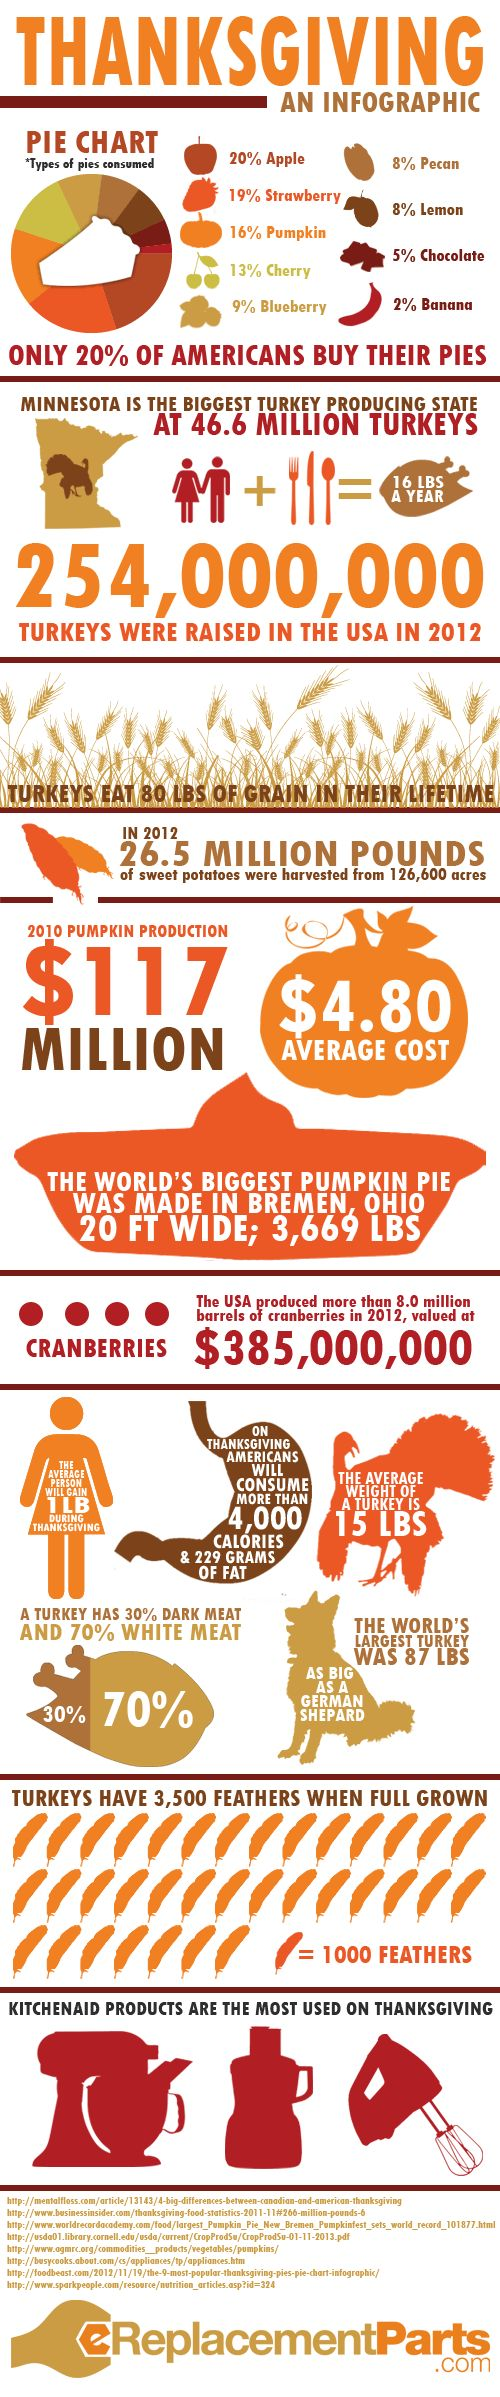 Thanksgiving: An Infographic |